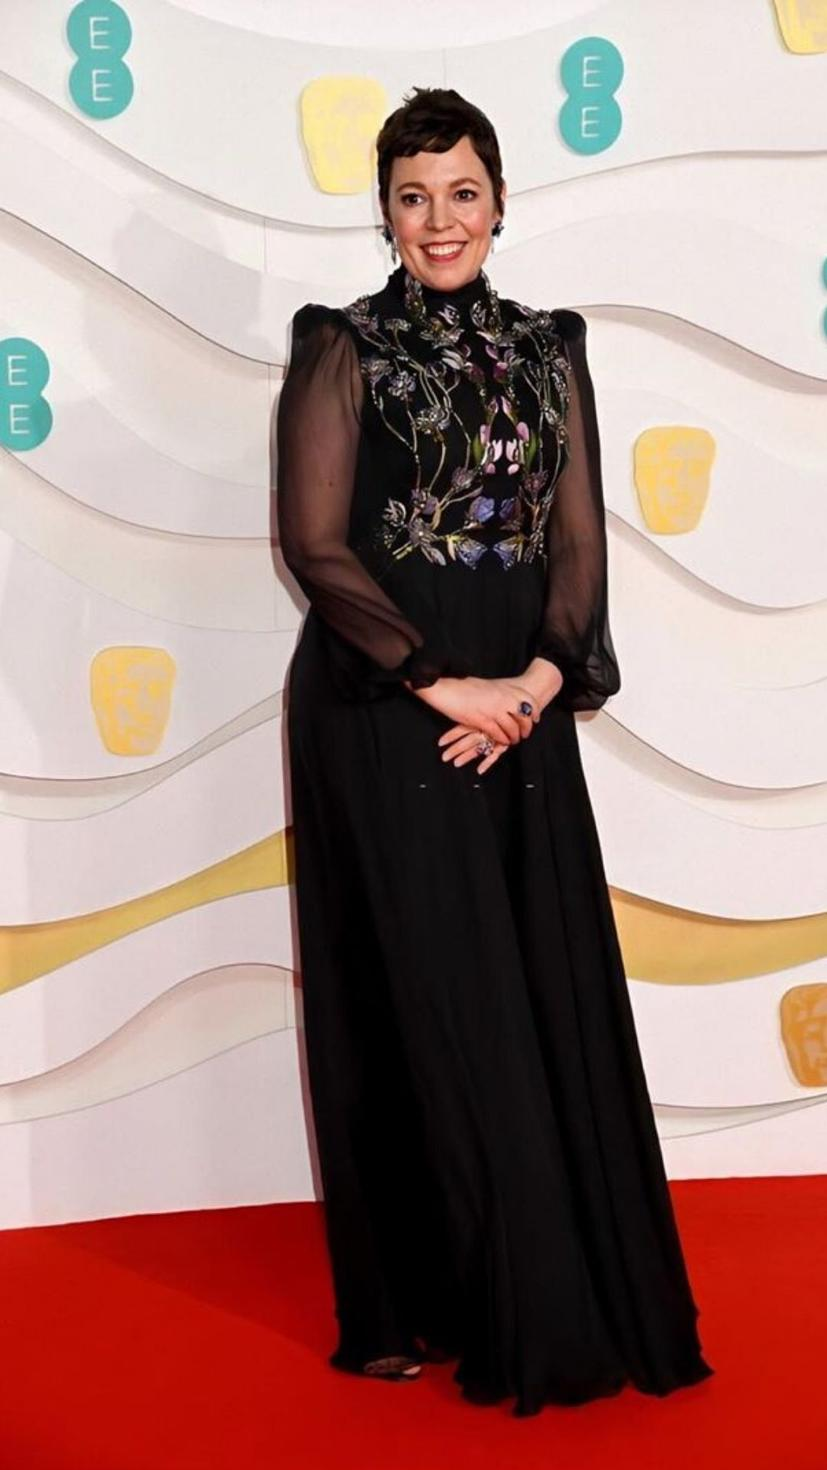 Olivia Colman wears a dress from Alexander Mcqueen with matching jewellery from Atelier Swarovski